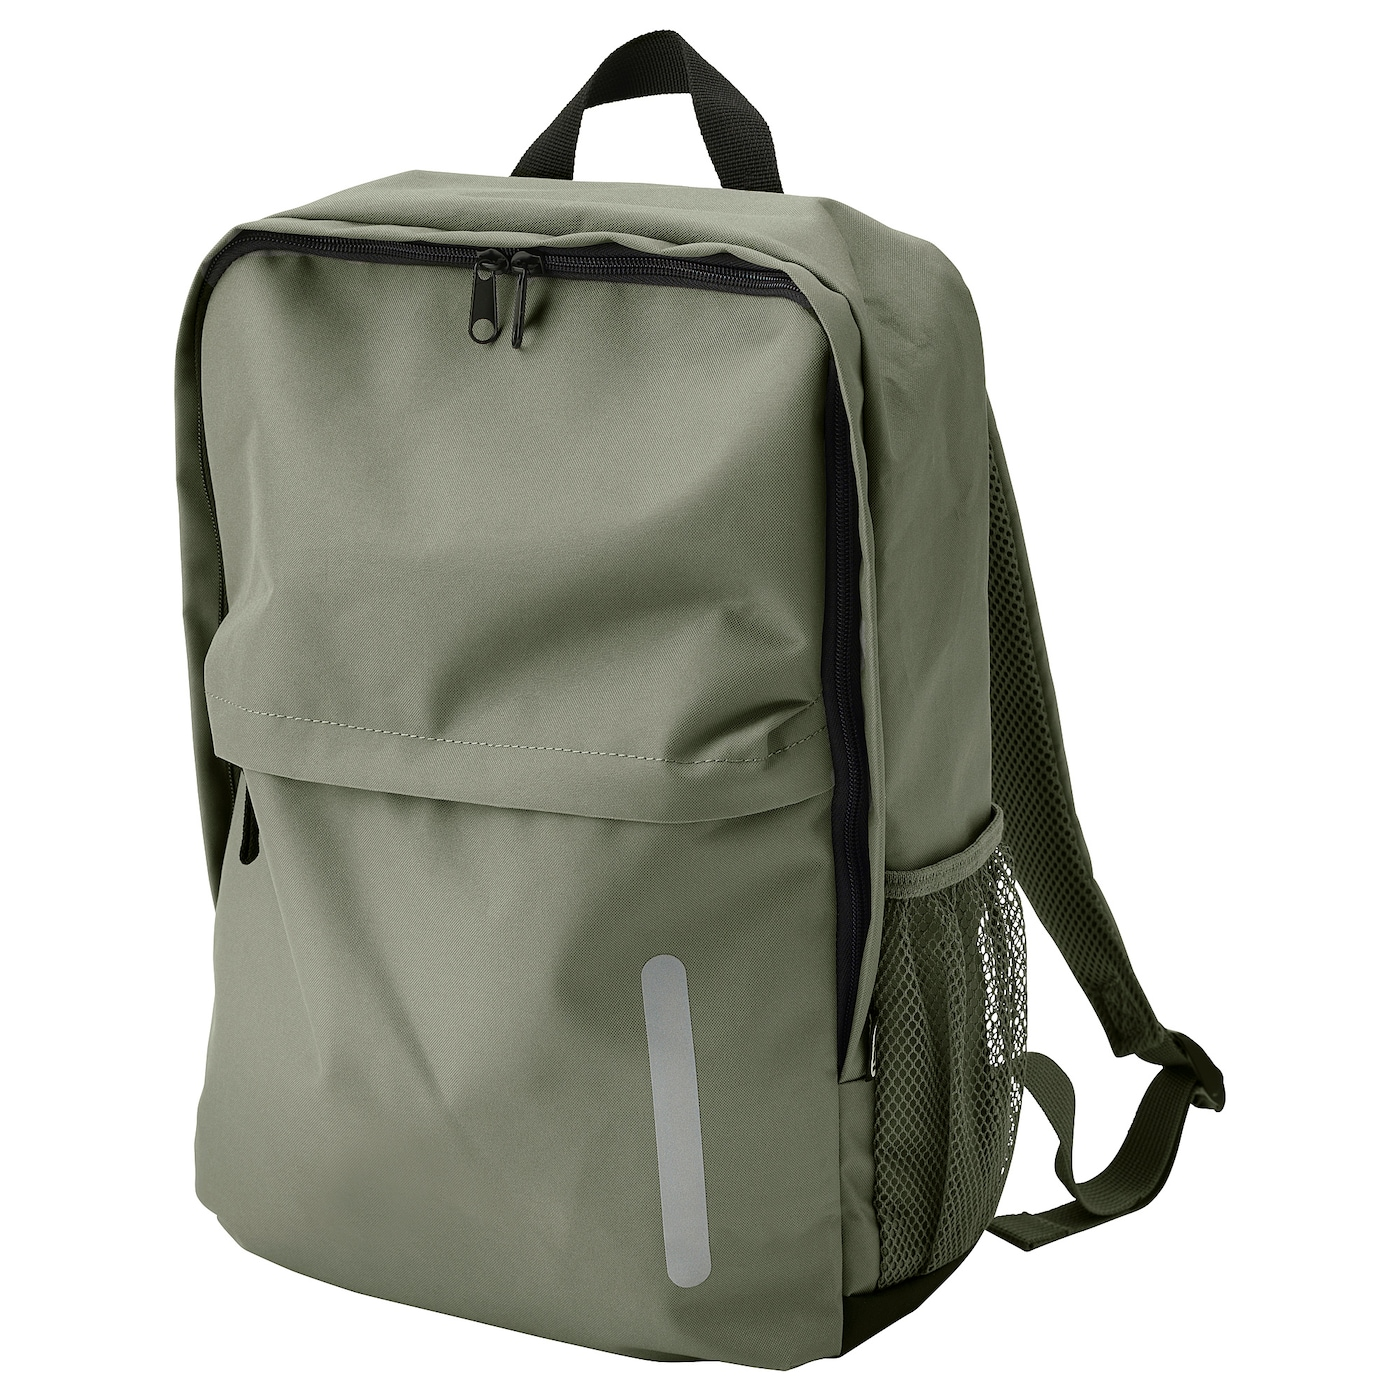 IKEA STARTTID backpack 2 side compartments perfect for bottles or umbrellas.